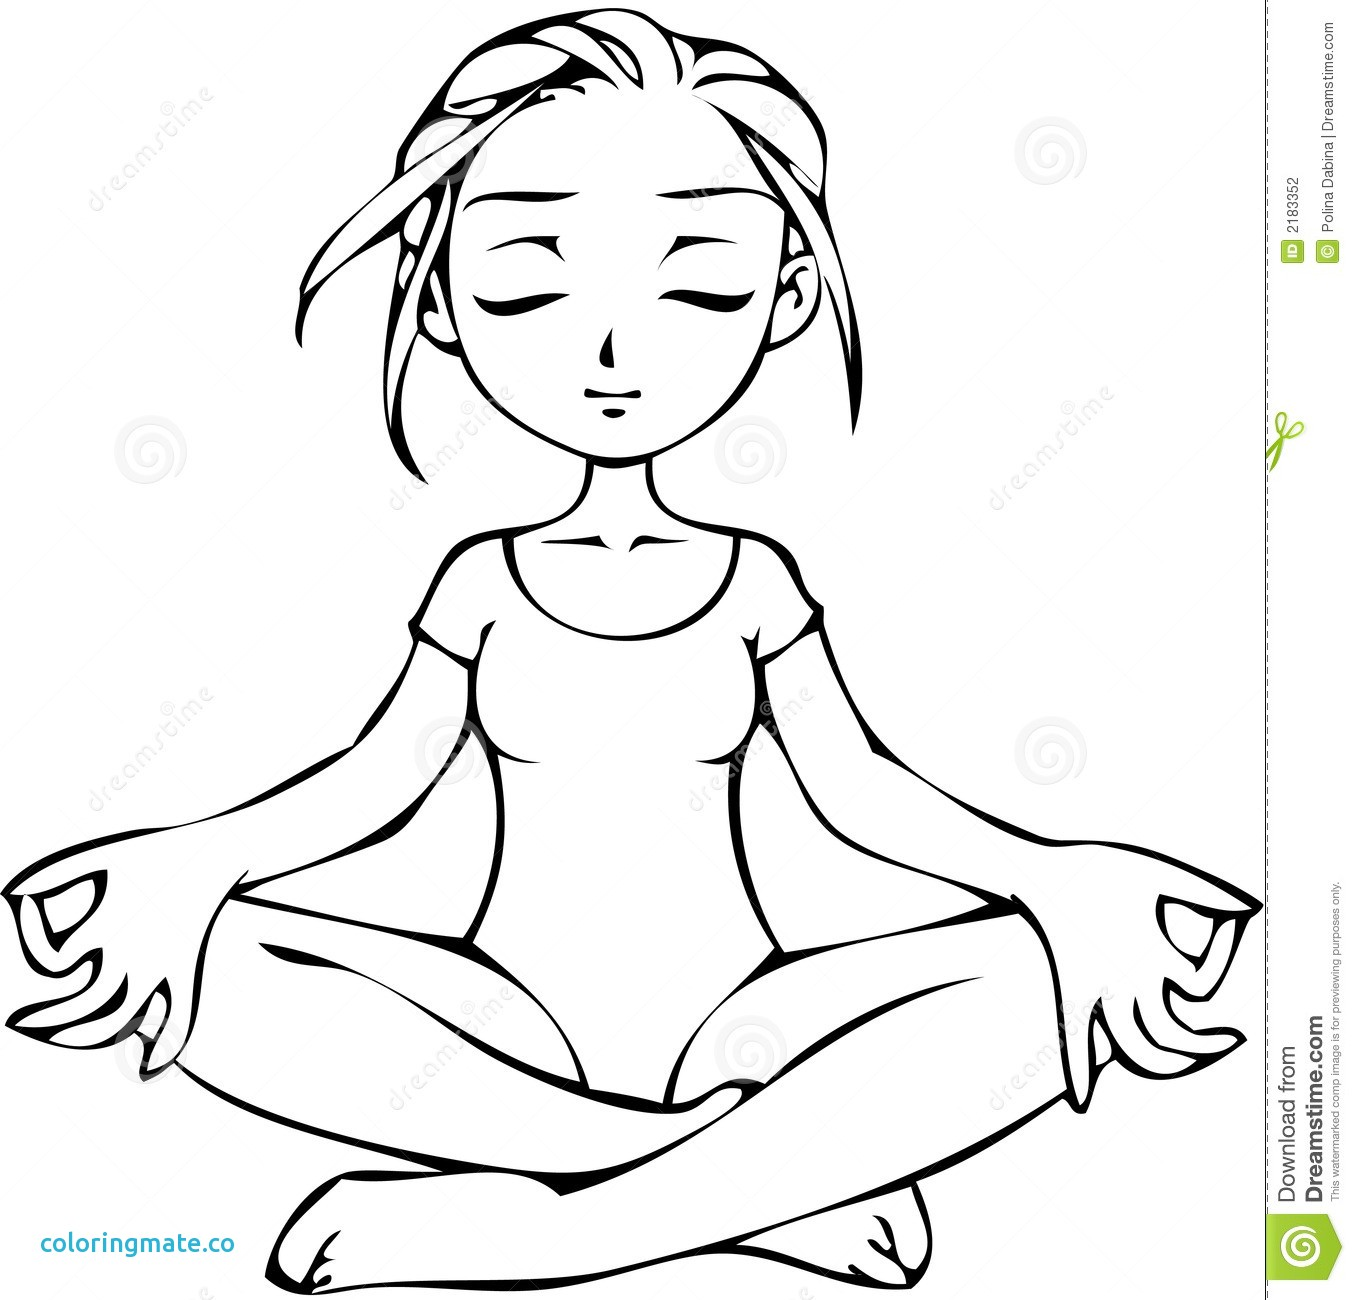 1355x1300 Meditation Coloring Pages Elegant Yoga And Meditation Coloring